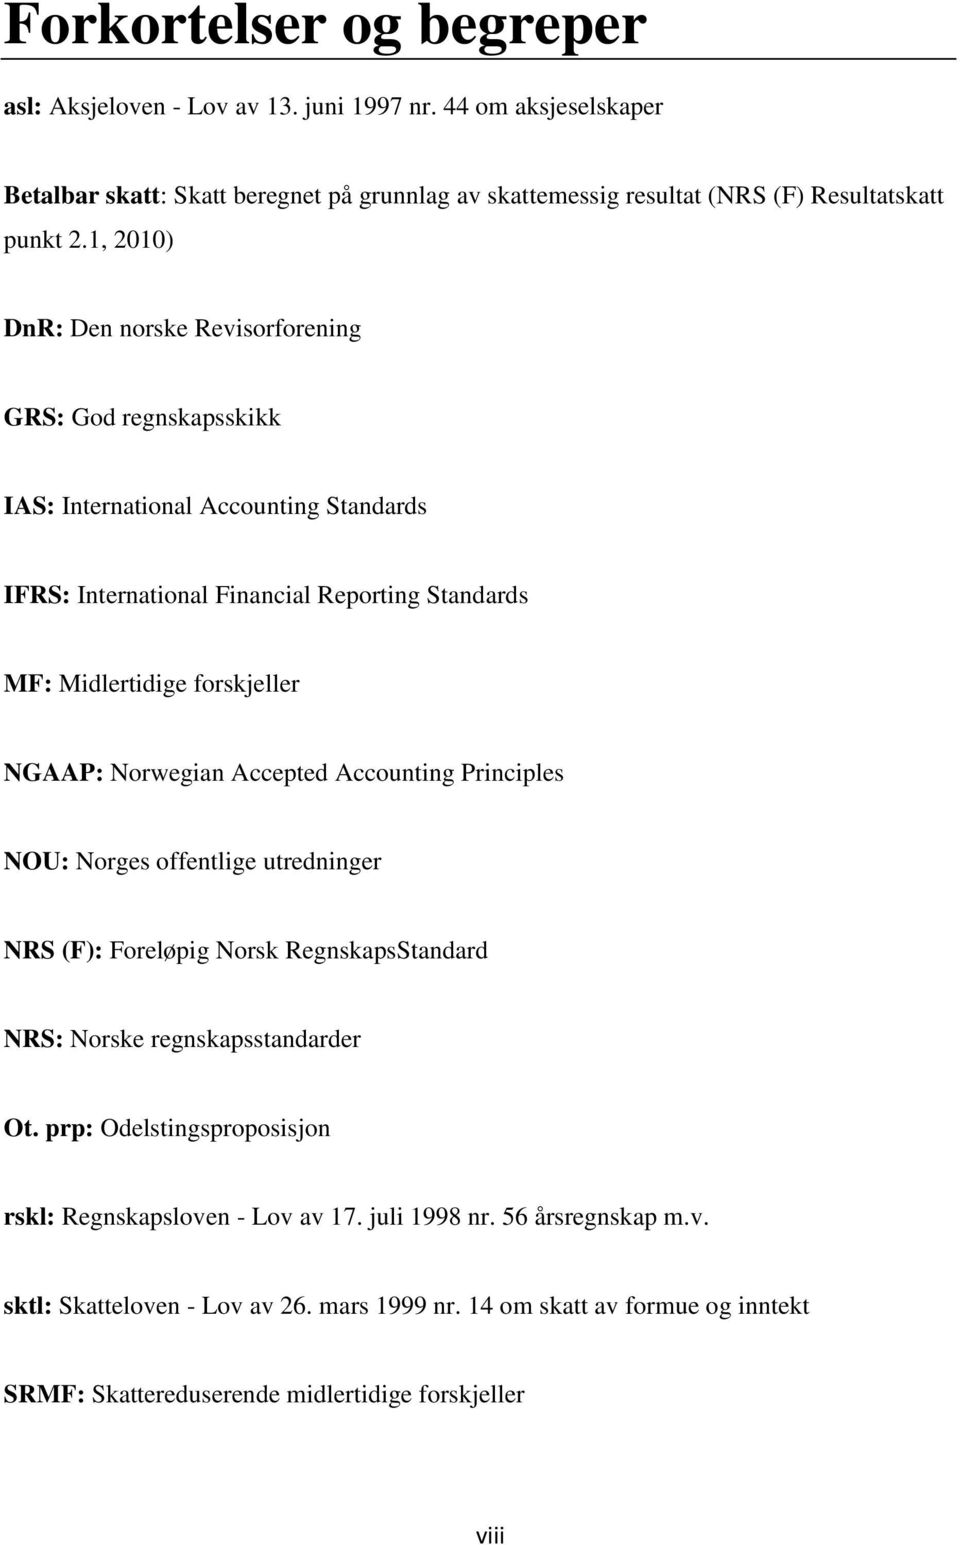 NGAAP: Norwegian Accepted Accounting Principles NOU: Norges offentlige utredninger NRS (F): Foreløpig Norsk RegnskapsStandard NRS: Norske regnskapsstandarder Ot.